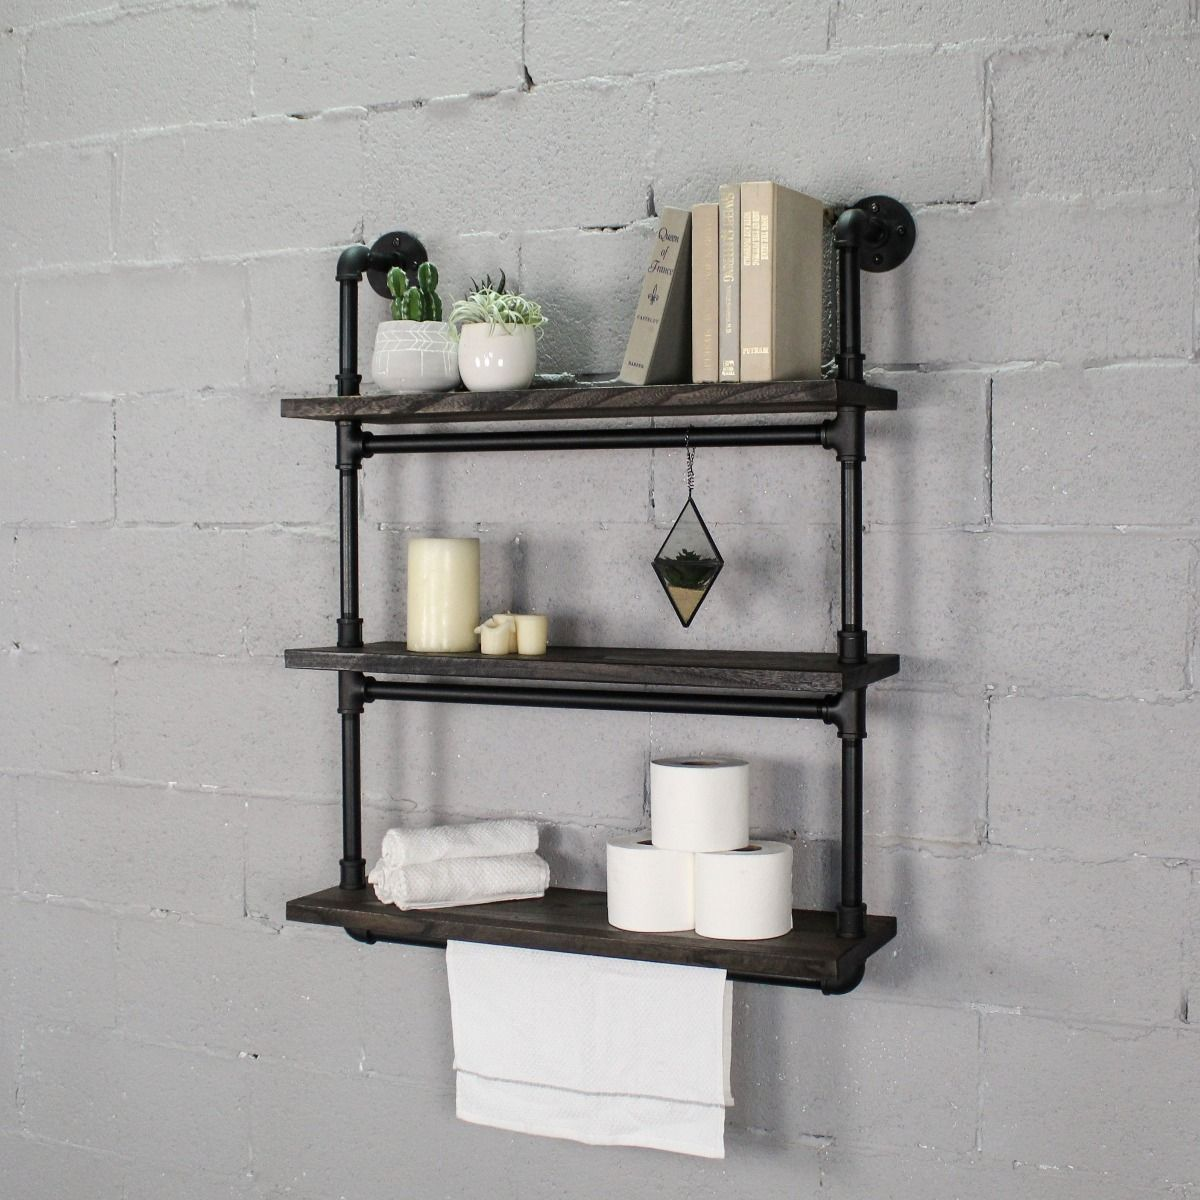 Juneau Industrial Chic 30 Wide 3 Tier Wall Mounted Etagere Bookcase